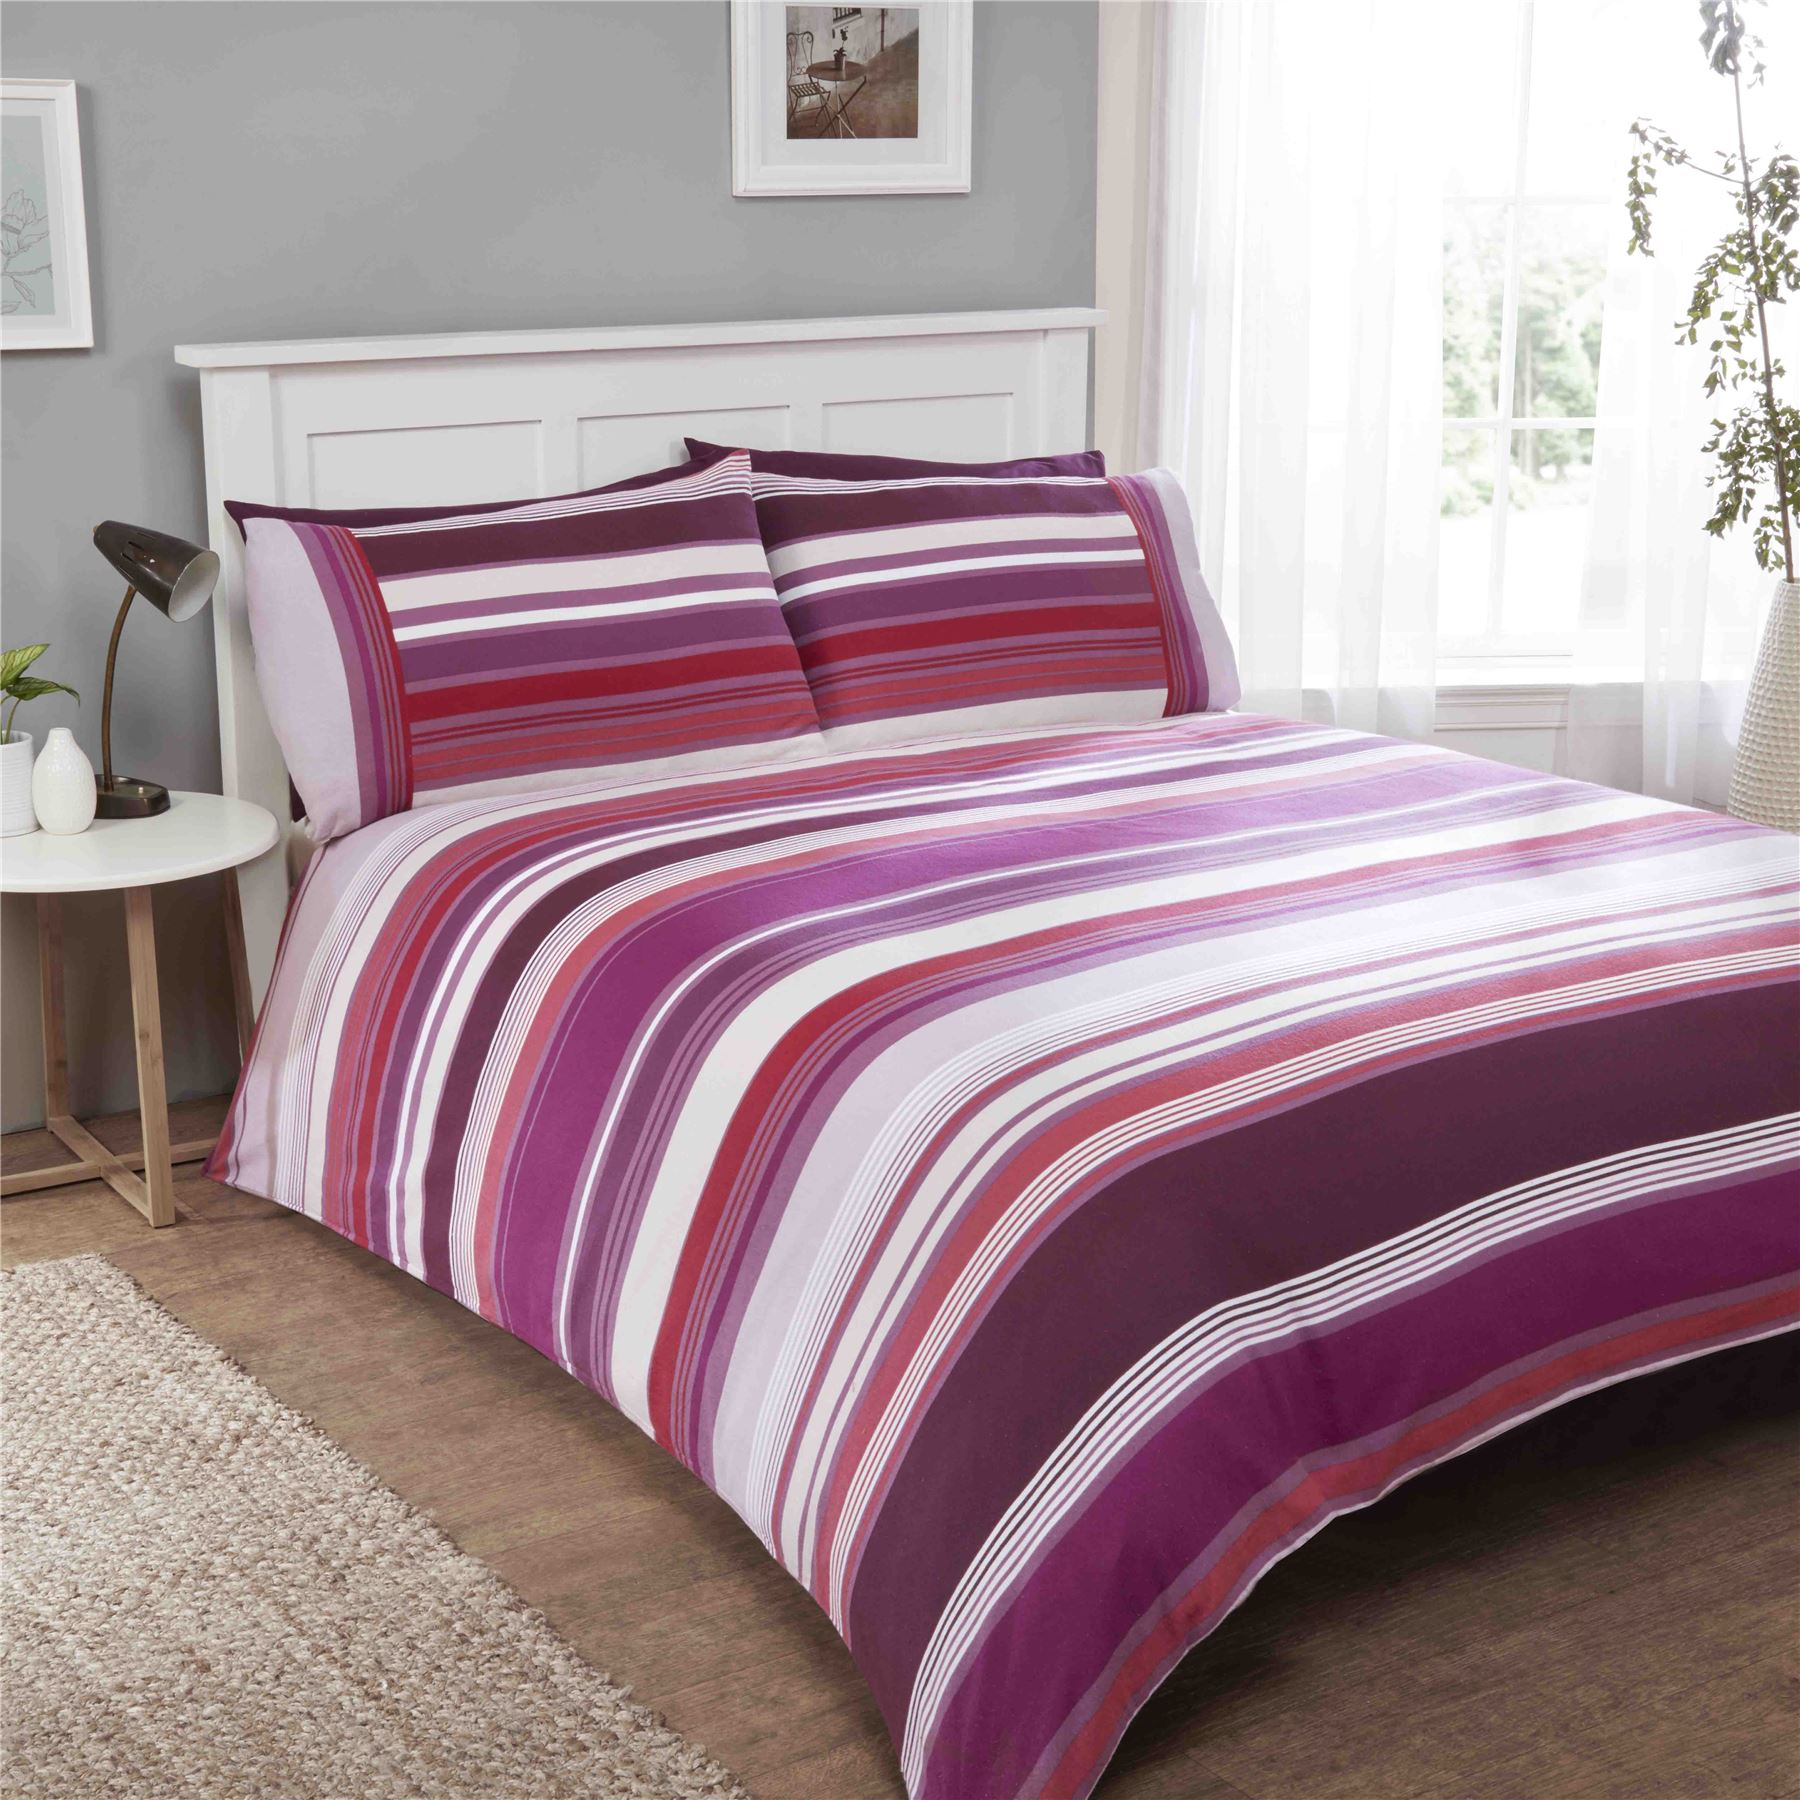 100 brushed cotton flannelette quilt duvet cover pillowcase bedding bed sets ebay - Amici di letto chat ...